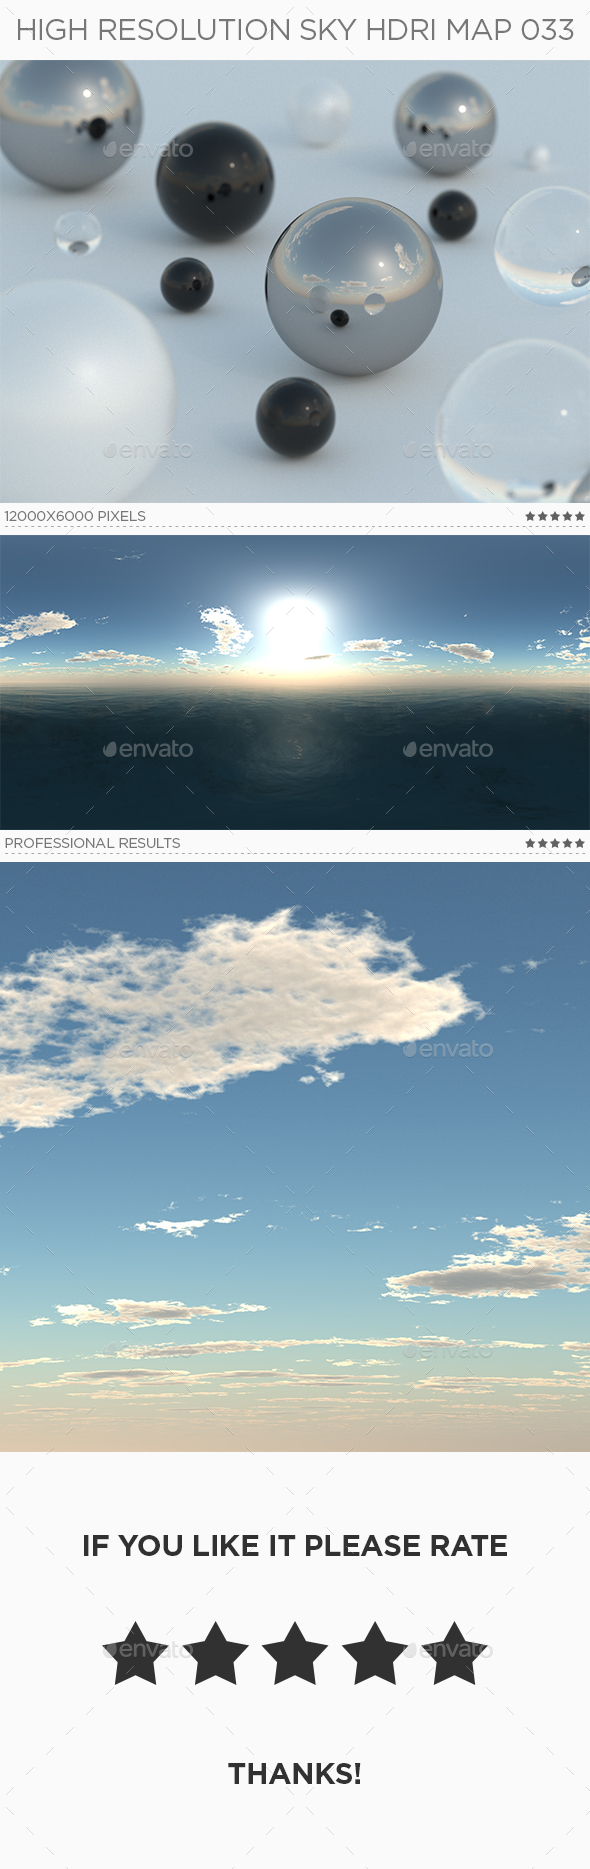 High Resolution Sky HDRi Map 033 - 3DOcean Item for Sale